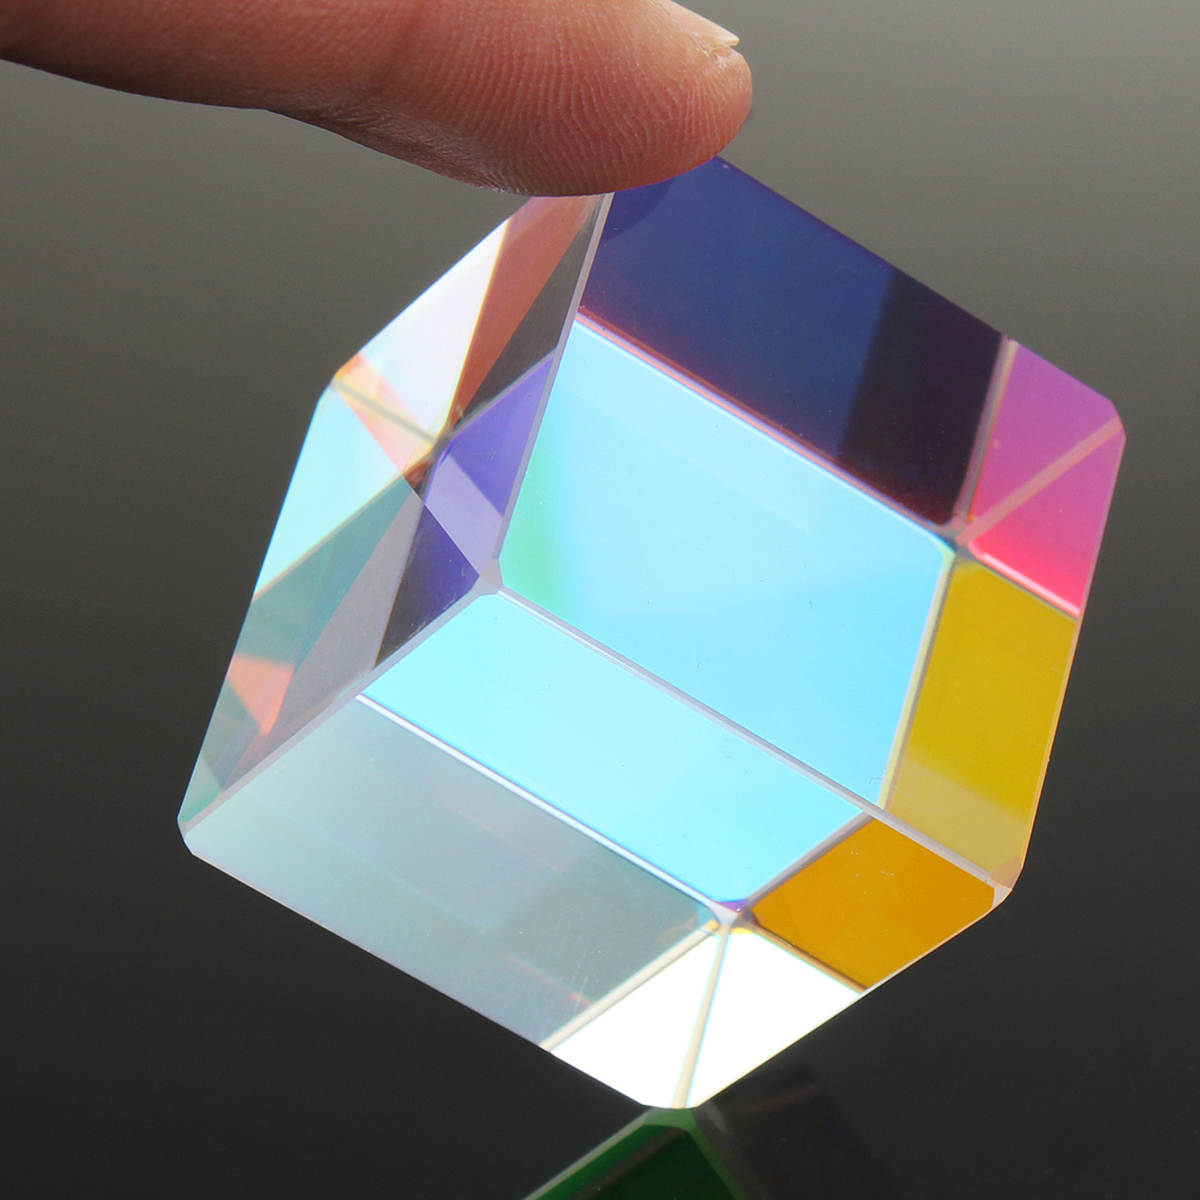 30x30mm Cube Defective Cross Dichroic Prism RGB Combiner Splitter Glass Decor